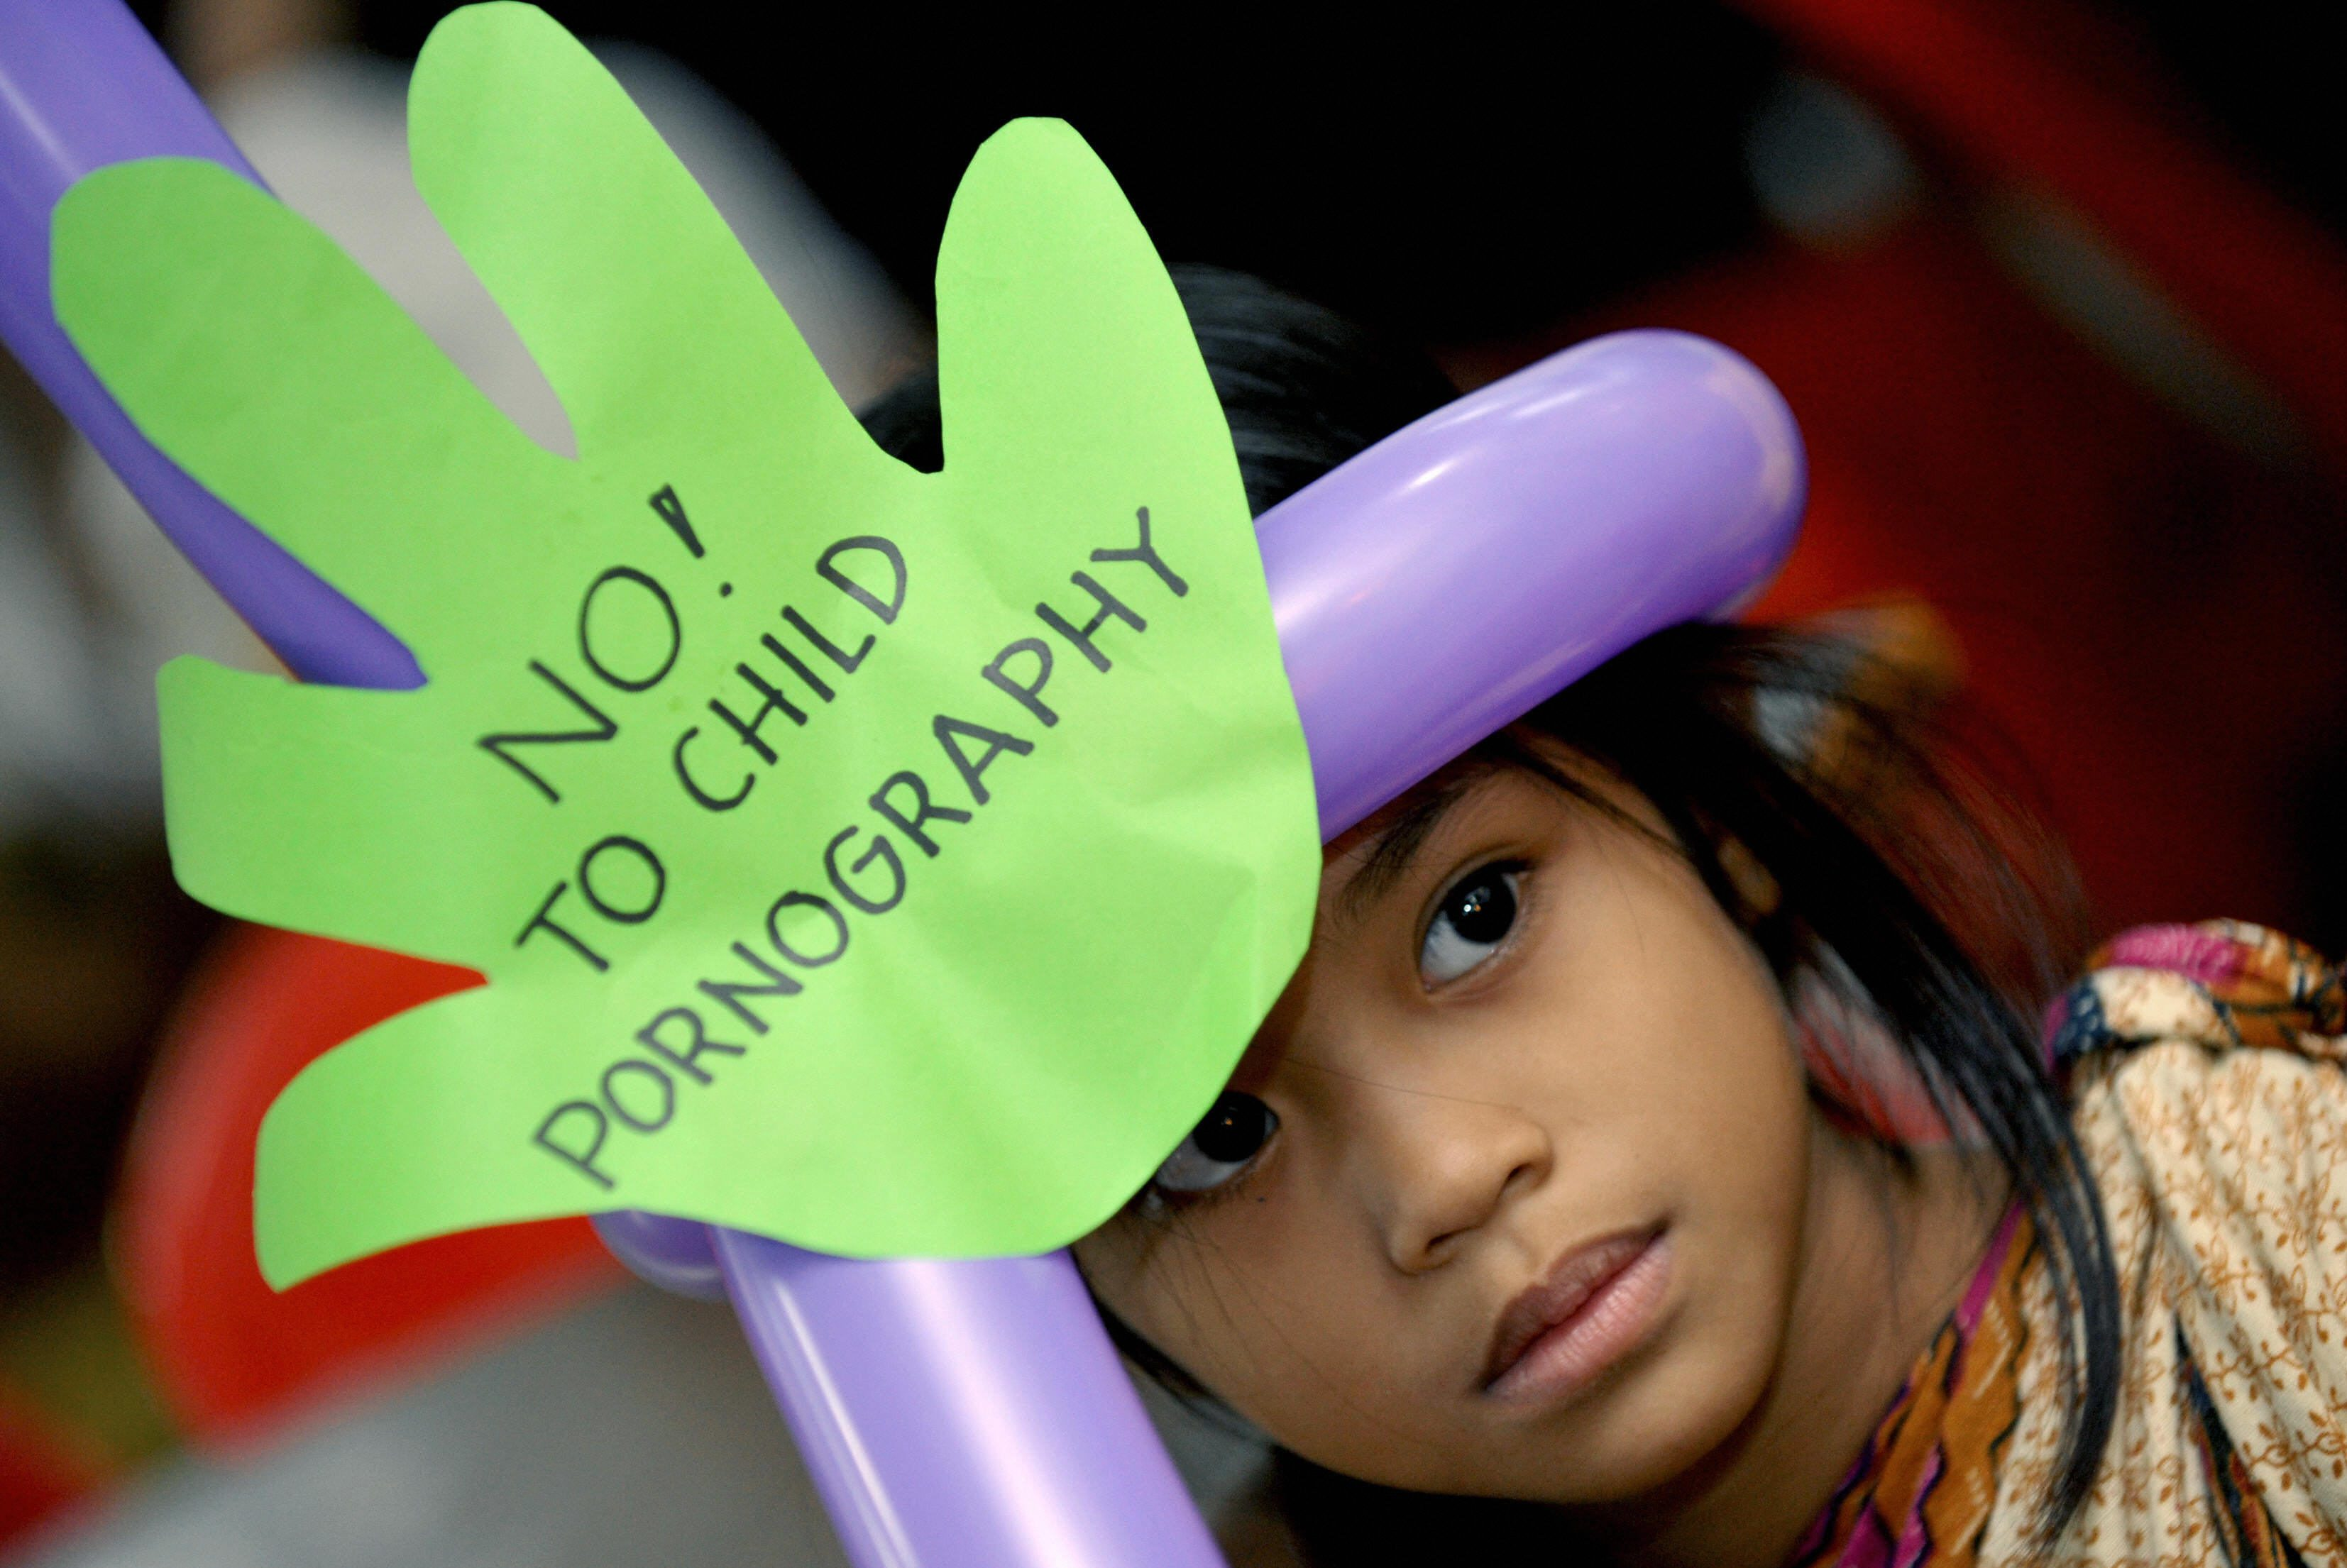 girl with sign - no to child pornography